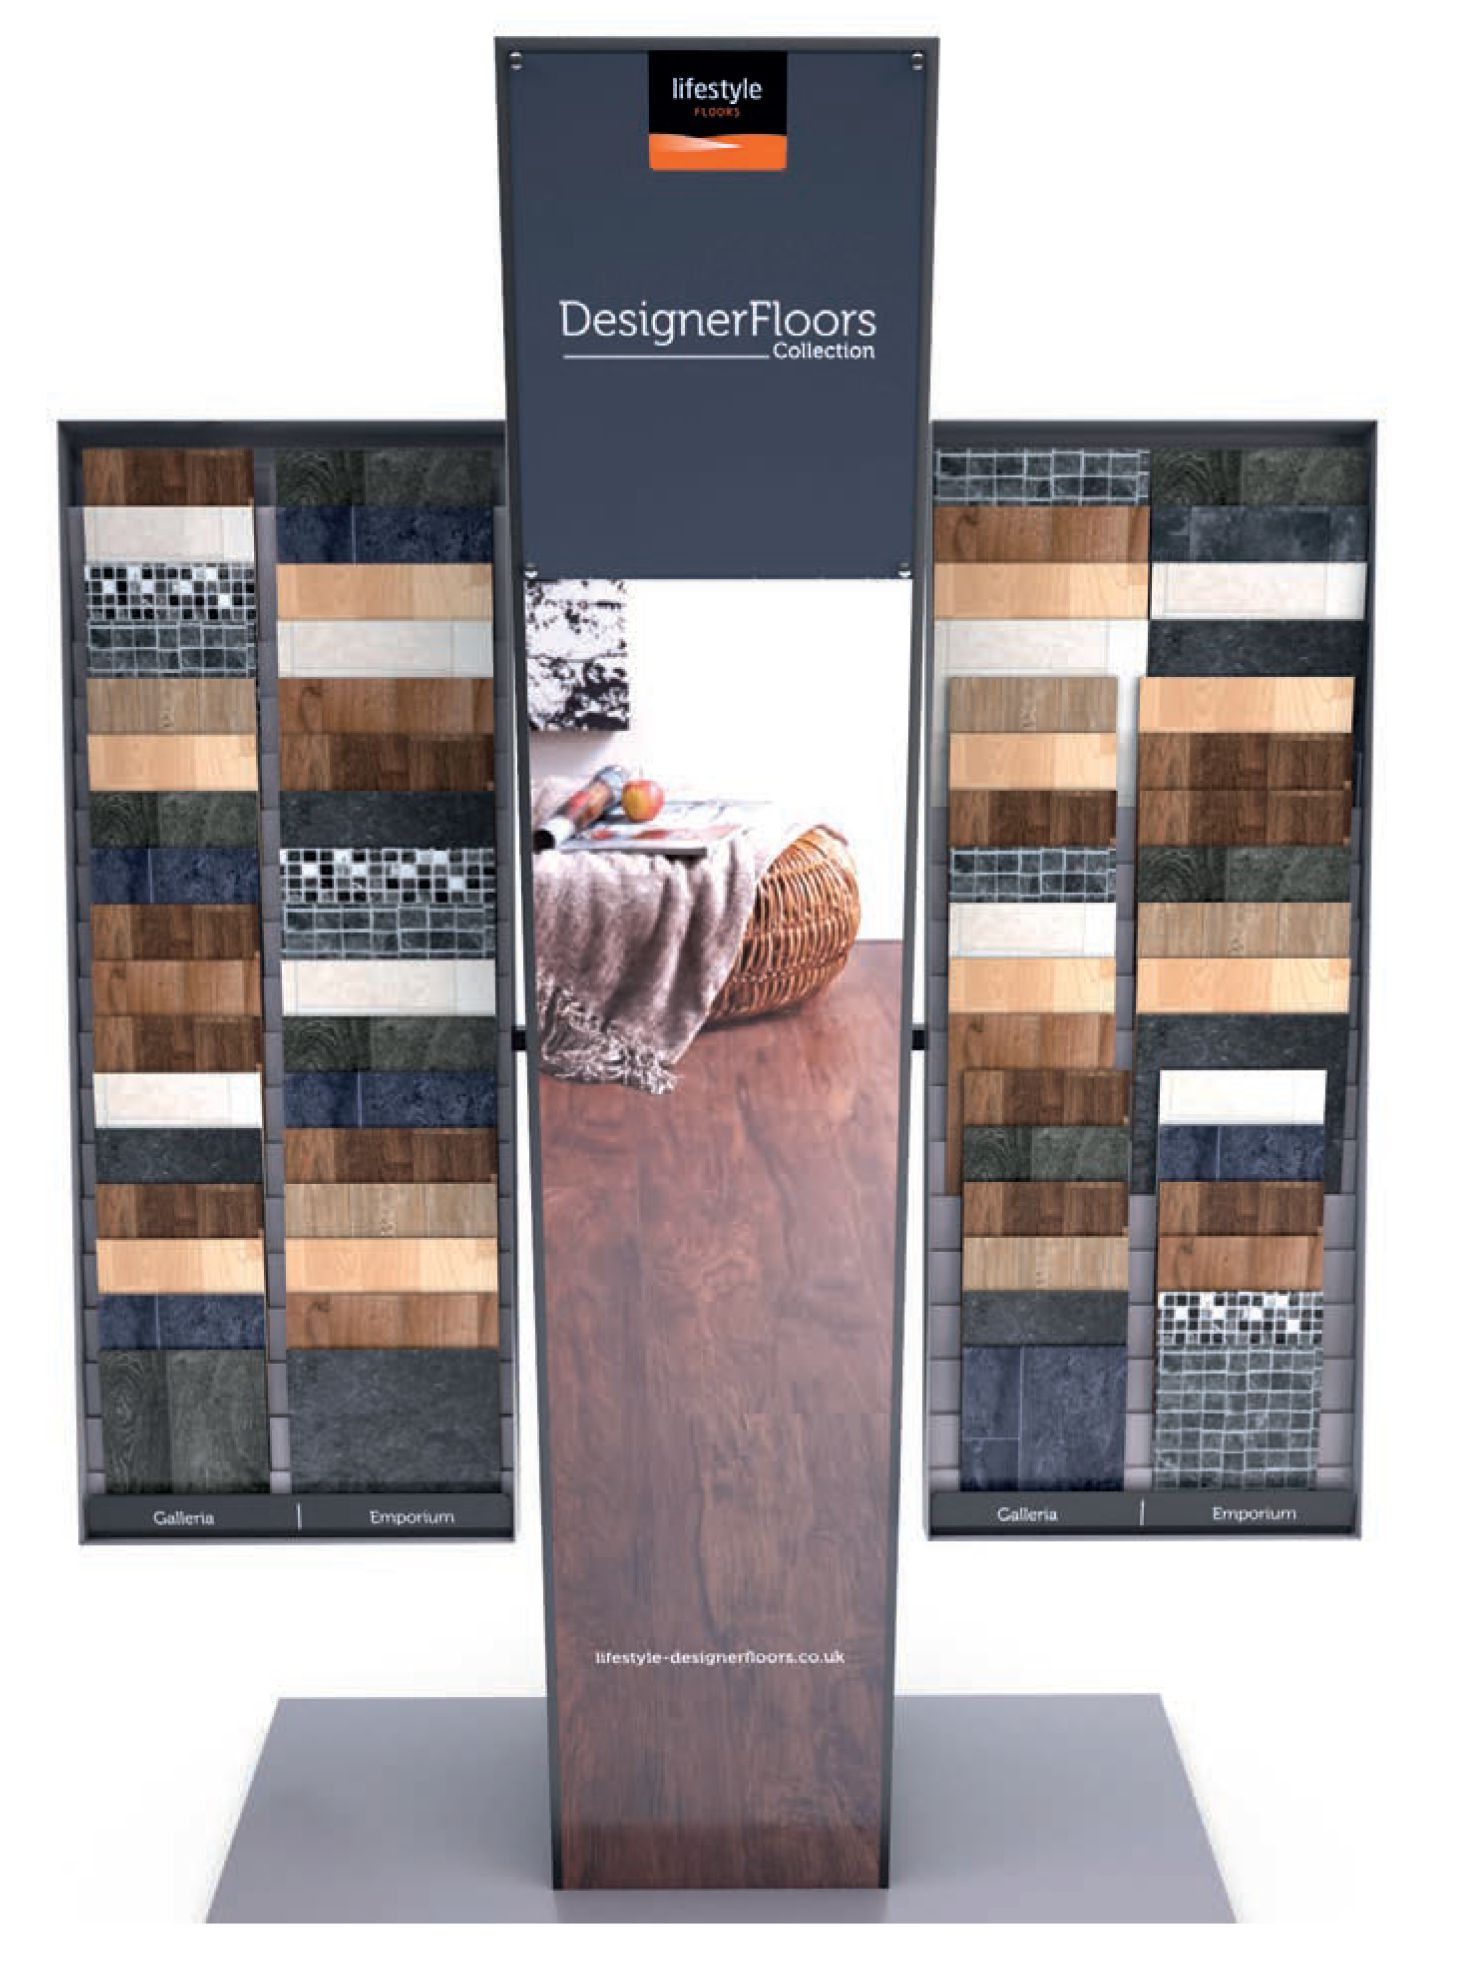 Lifestyle Floors luxury vinyl tile display stand